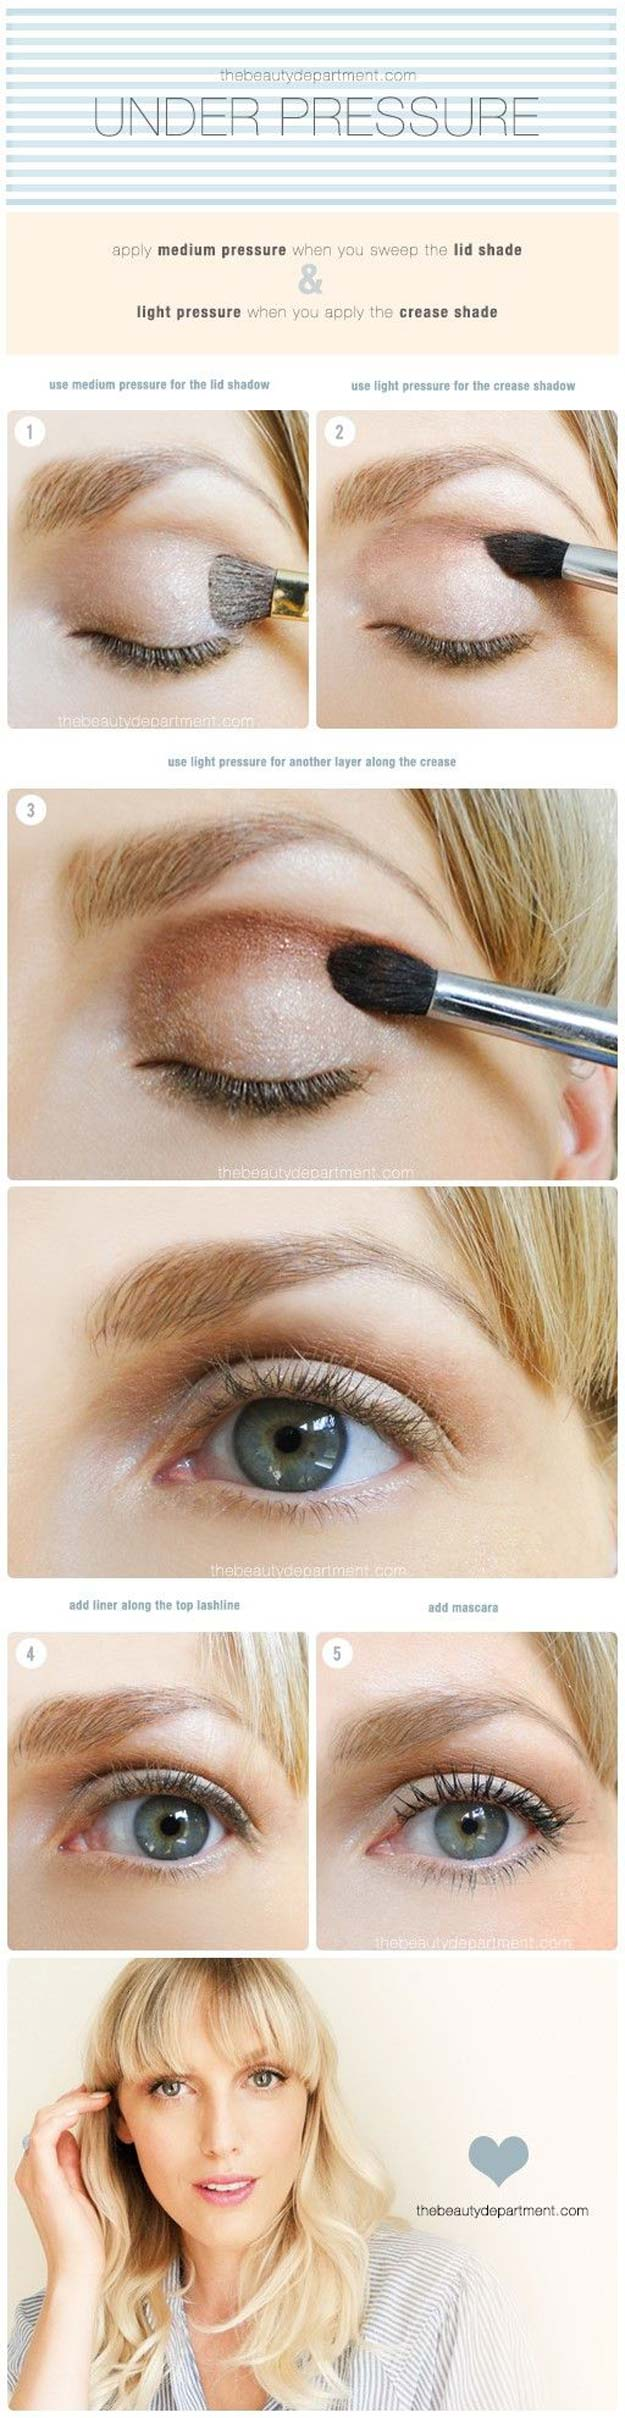 Best Eyeshadow Tutorials - The Eye Shadow Skills - Easy Step by Step How To For Eye Shadow - Cool Makeup Tricks and Eye Makeup Tutorial With Instructions - Quick Ways to Do Smoky Eye, Natural Makeup, Looks for Day and Evening, Brown and Blue Eyes - Cool Ideas for Beginners and Teens http://diyprojectsforteens.com/best-eyeshadow-tutorials